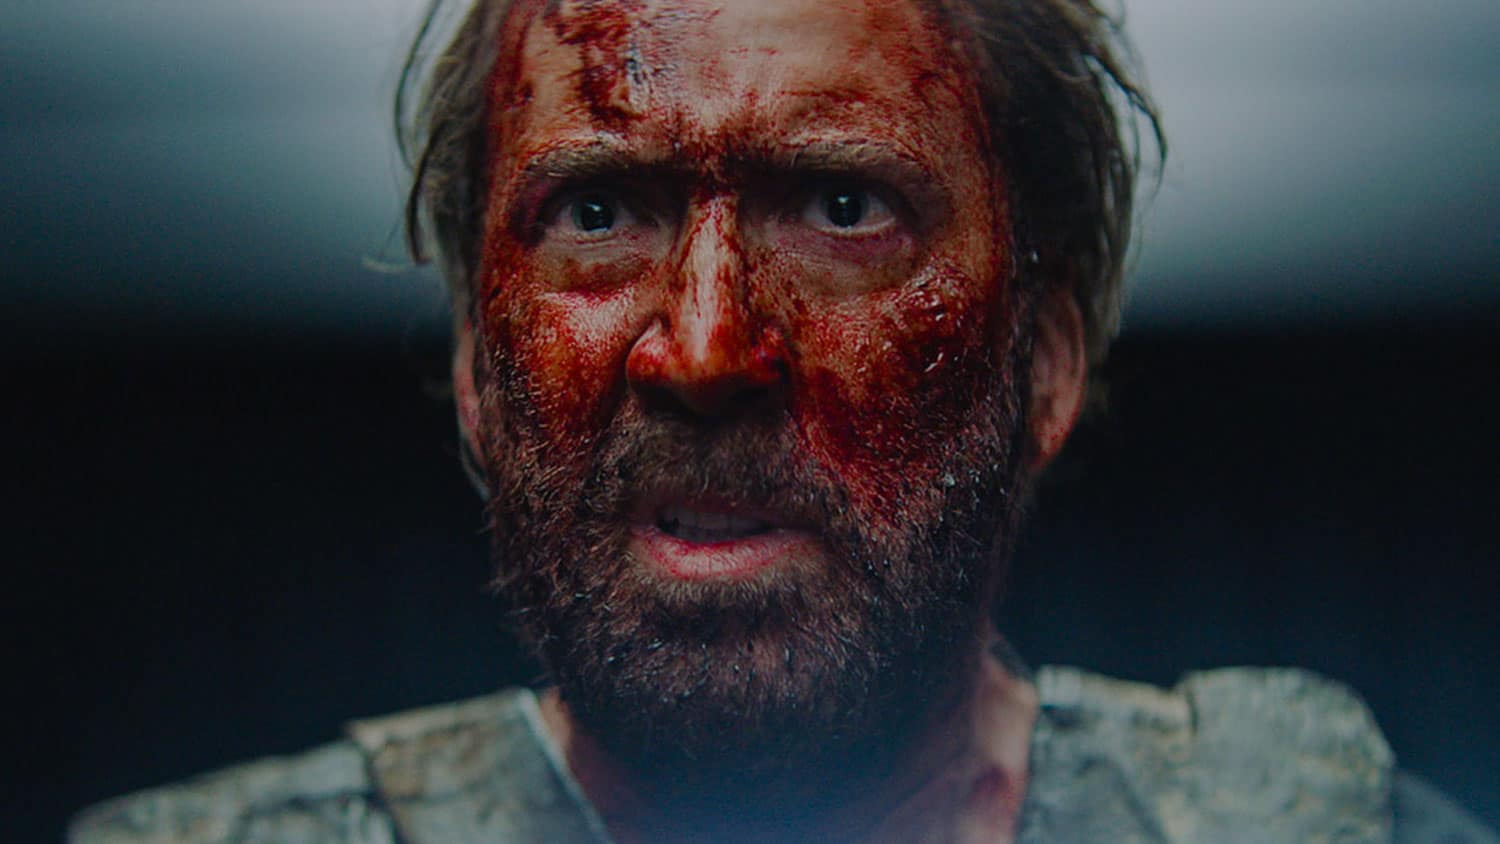 Mandy Review – And Fade To Black - OC Movie Reviews - Movie Reviews, Movie News, Documentary Reviews, Short Films, Short Film Reviews, Trailers, Movie Trailers, Interviews, film reviews, film news, hollywood, indie films, documentaries